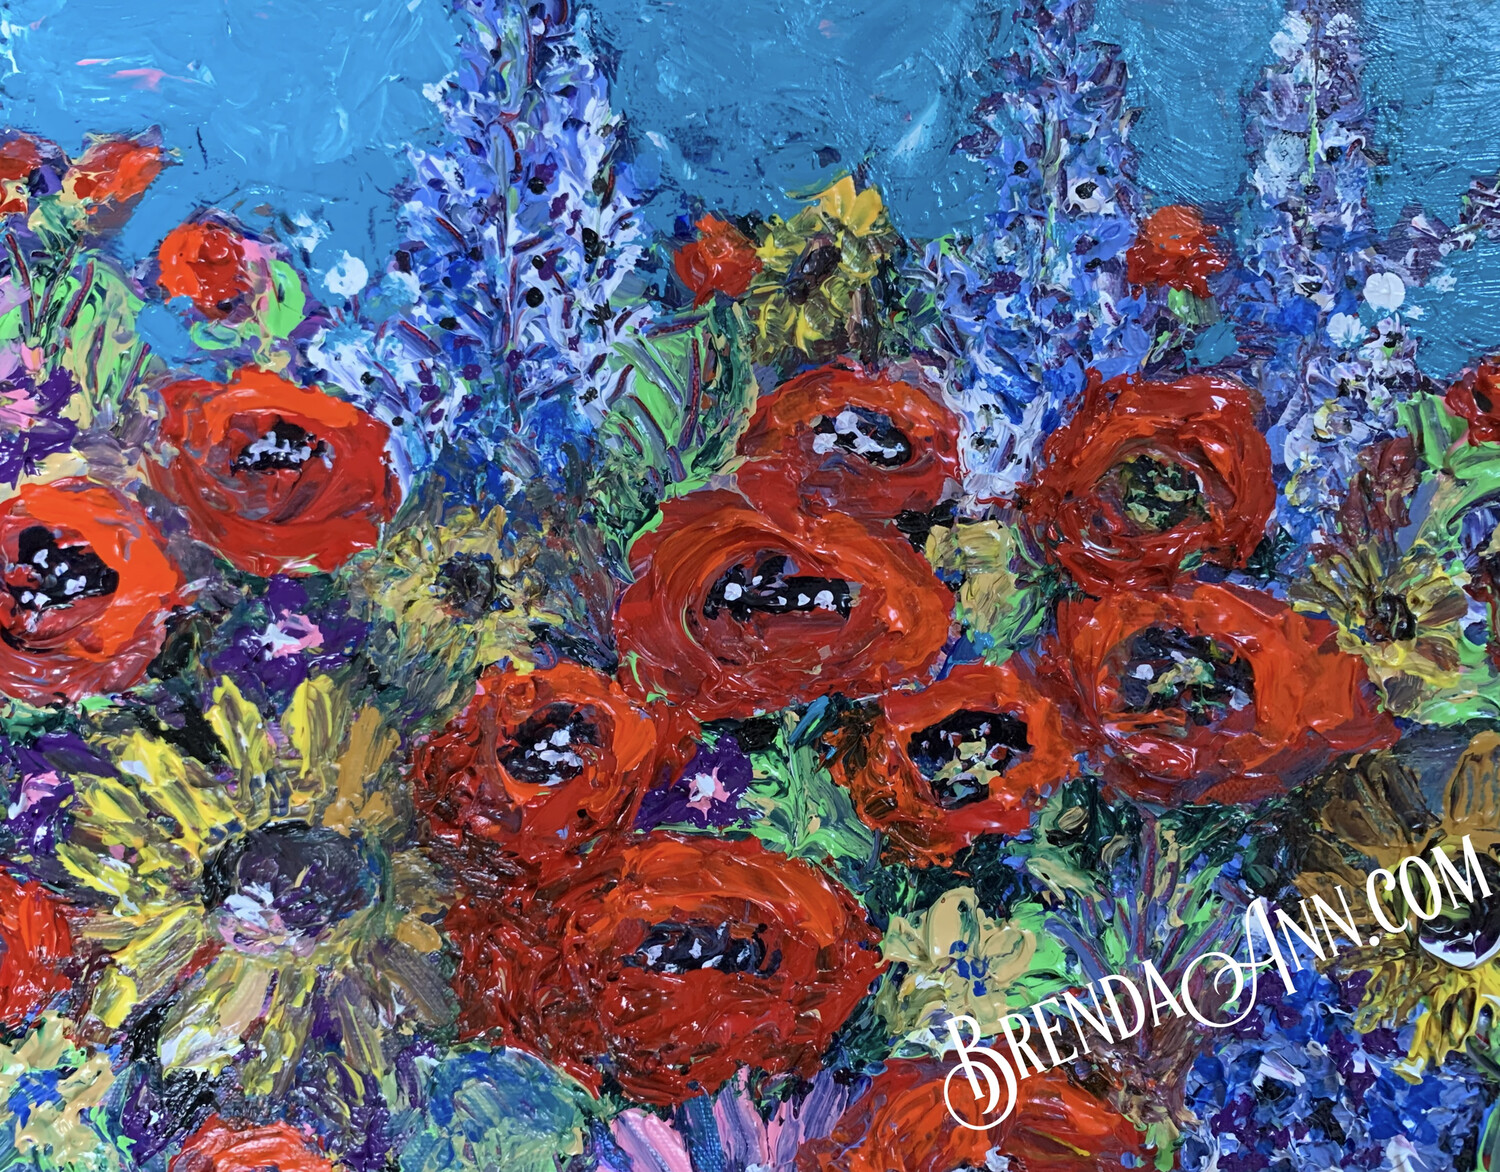 Summer Garden with Red Poppies - Original - Thick Impasto Acrylic Painting on Canvas